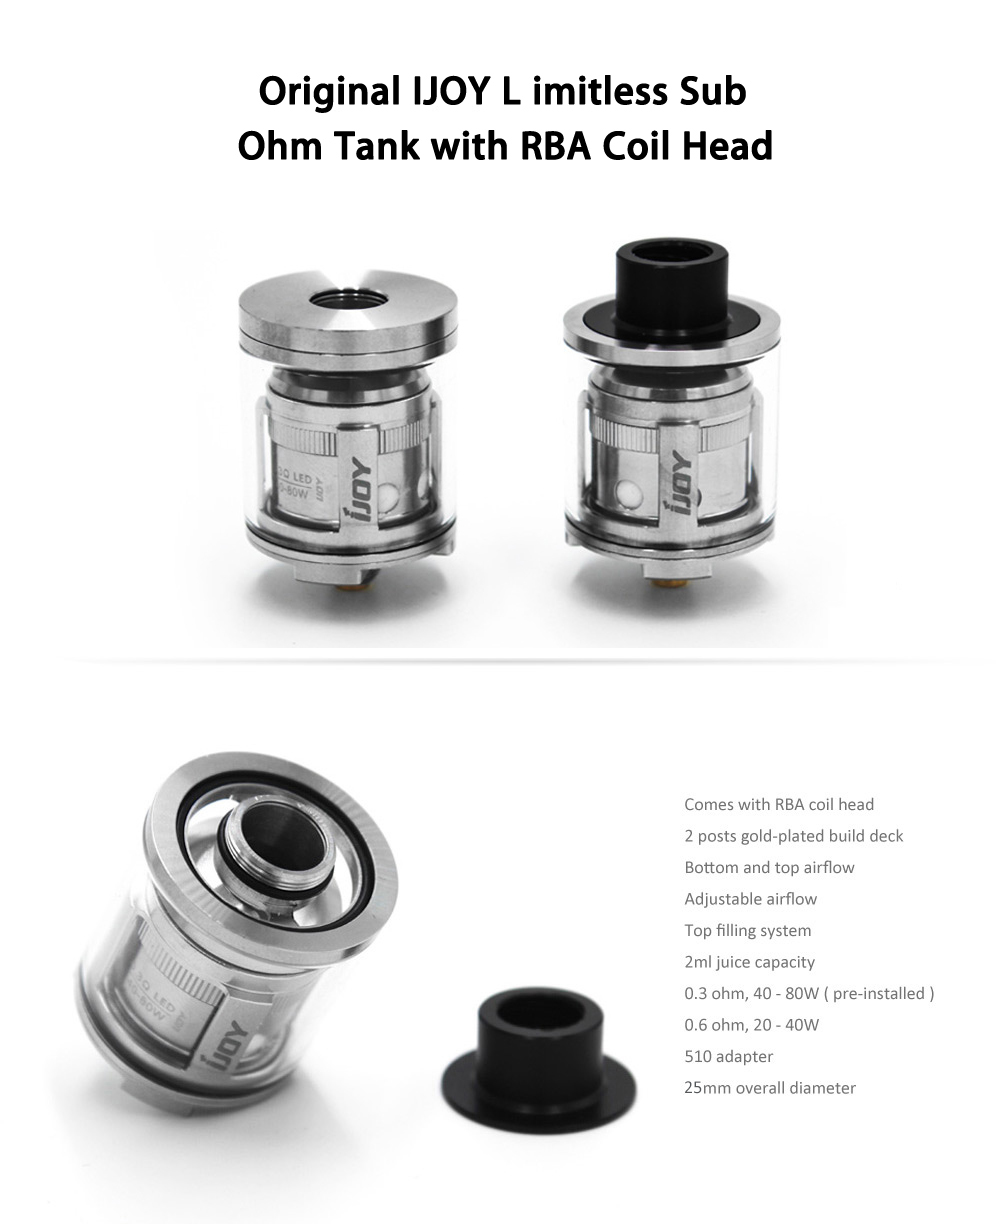 Original Ijoy Limitless Sub Ohm Tank Clearomizer with RBA Coil Head / 25mm Diameter / 2ml / 0.6 ohm / Top Filling System / Light-up Chip Coil for E Cigarette